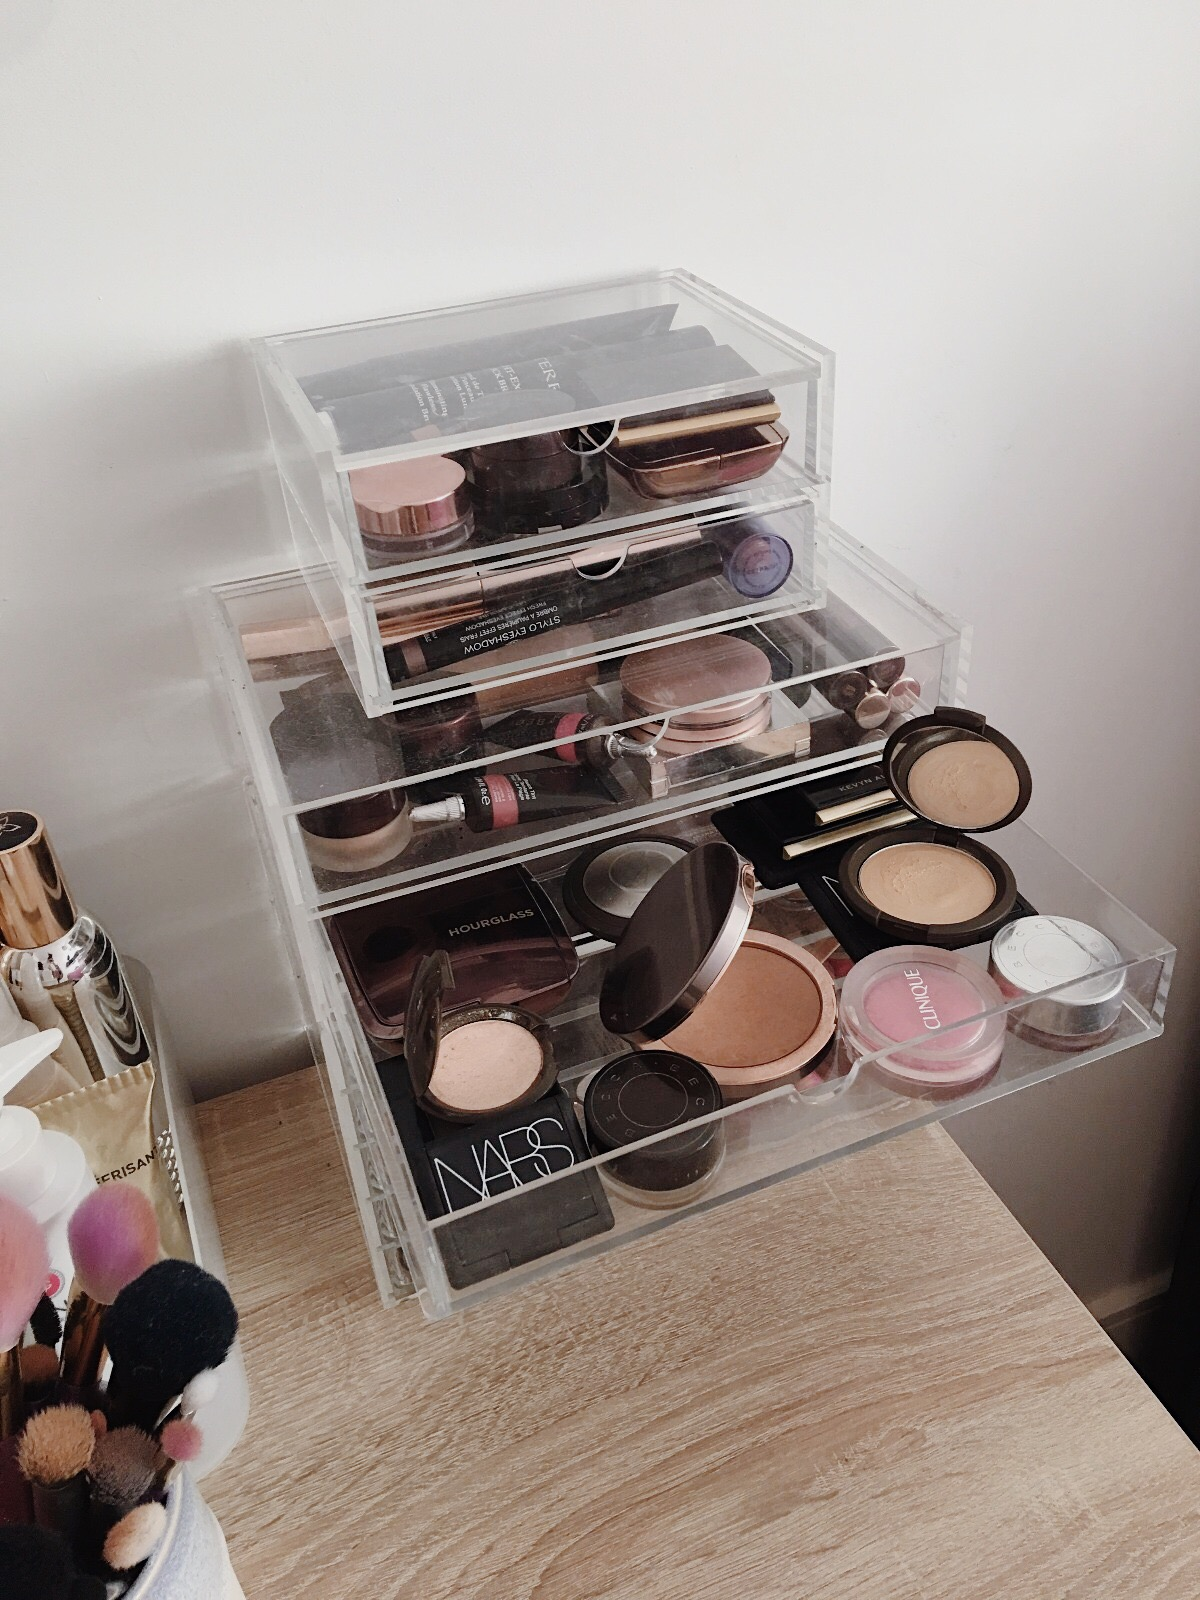 www.jasminehardingmakeup.com - My beauty storage